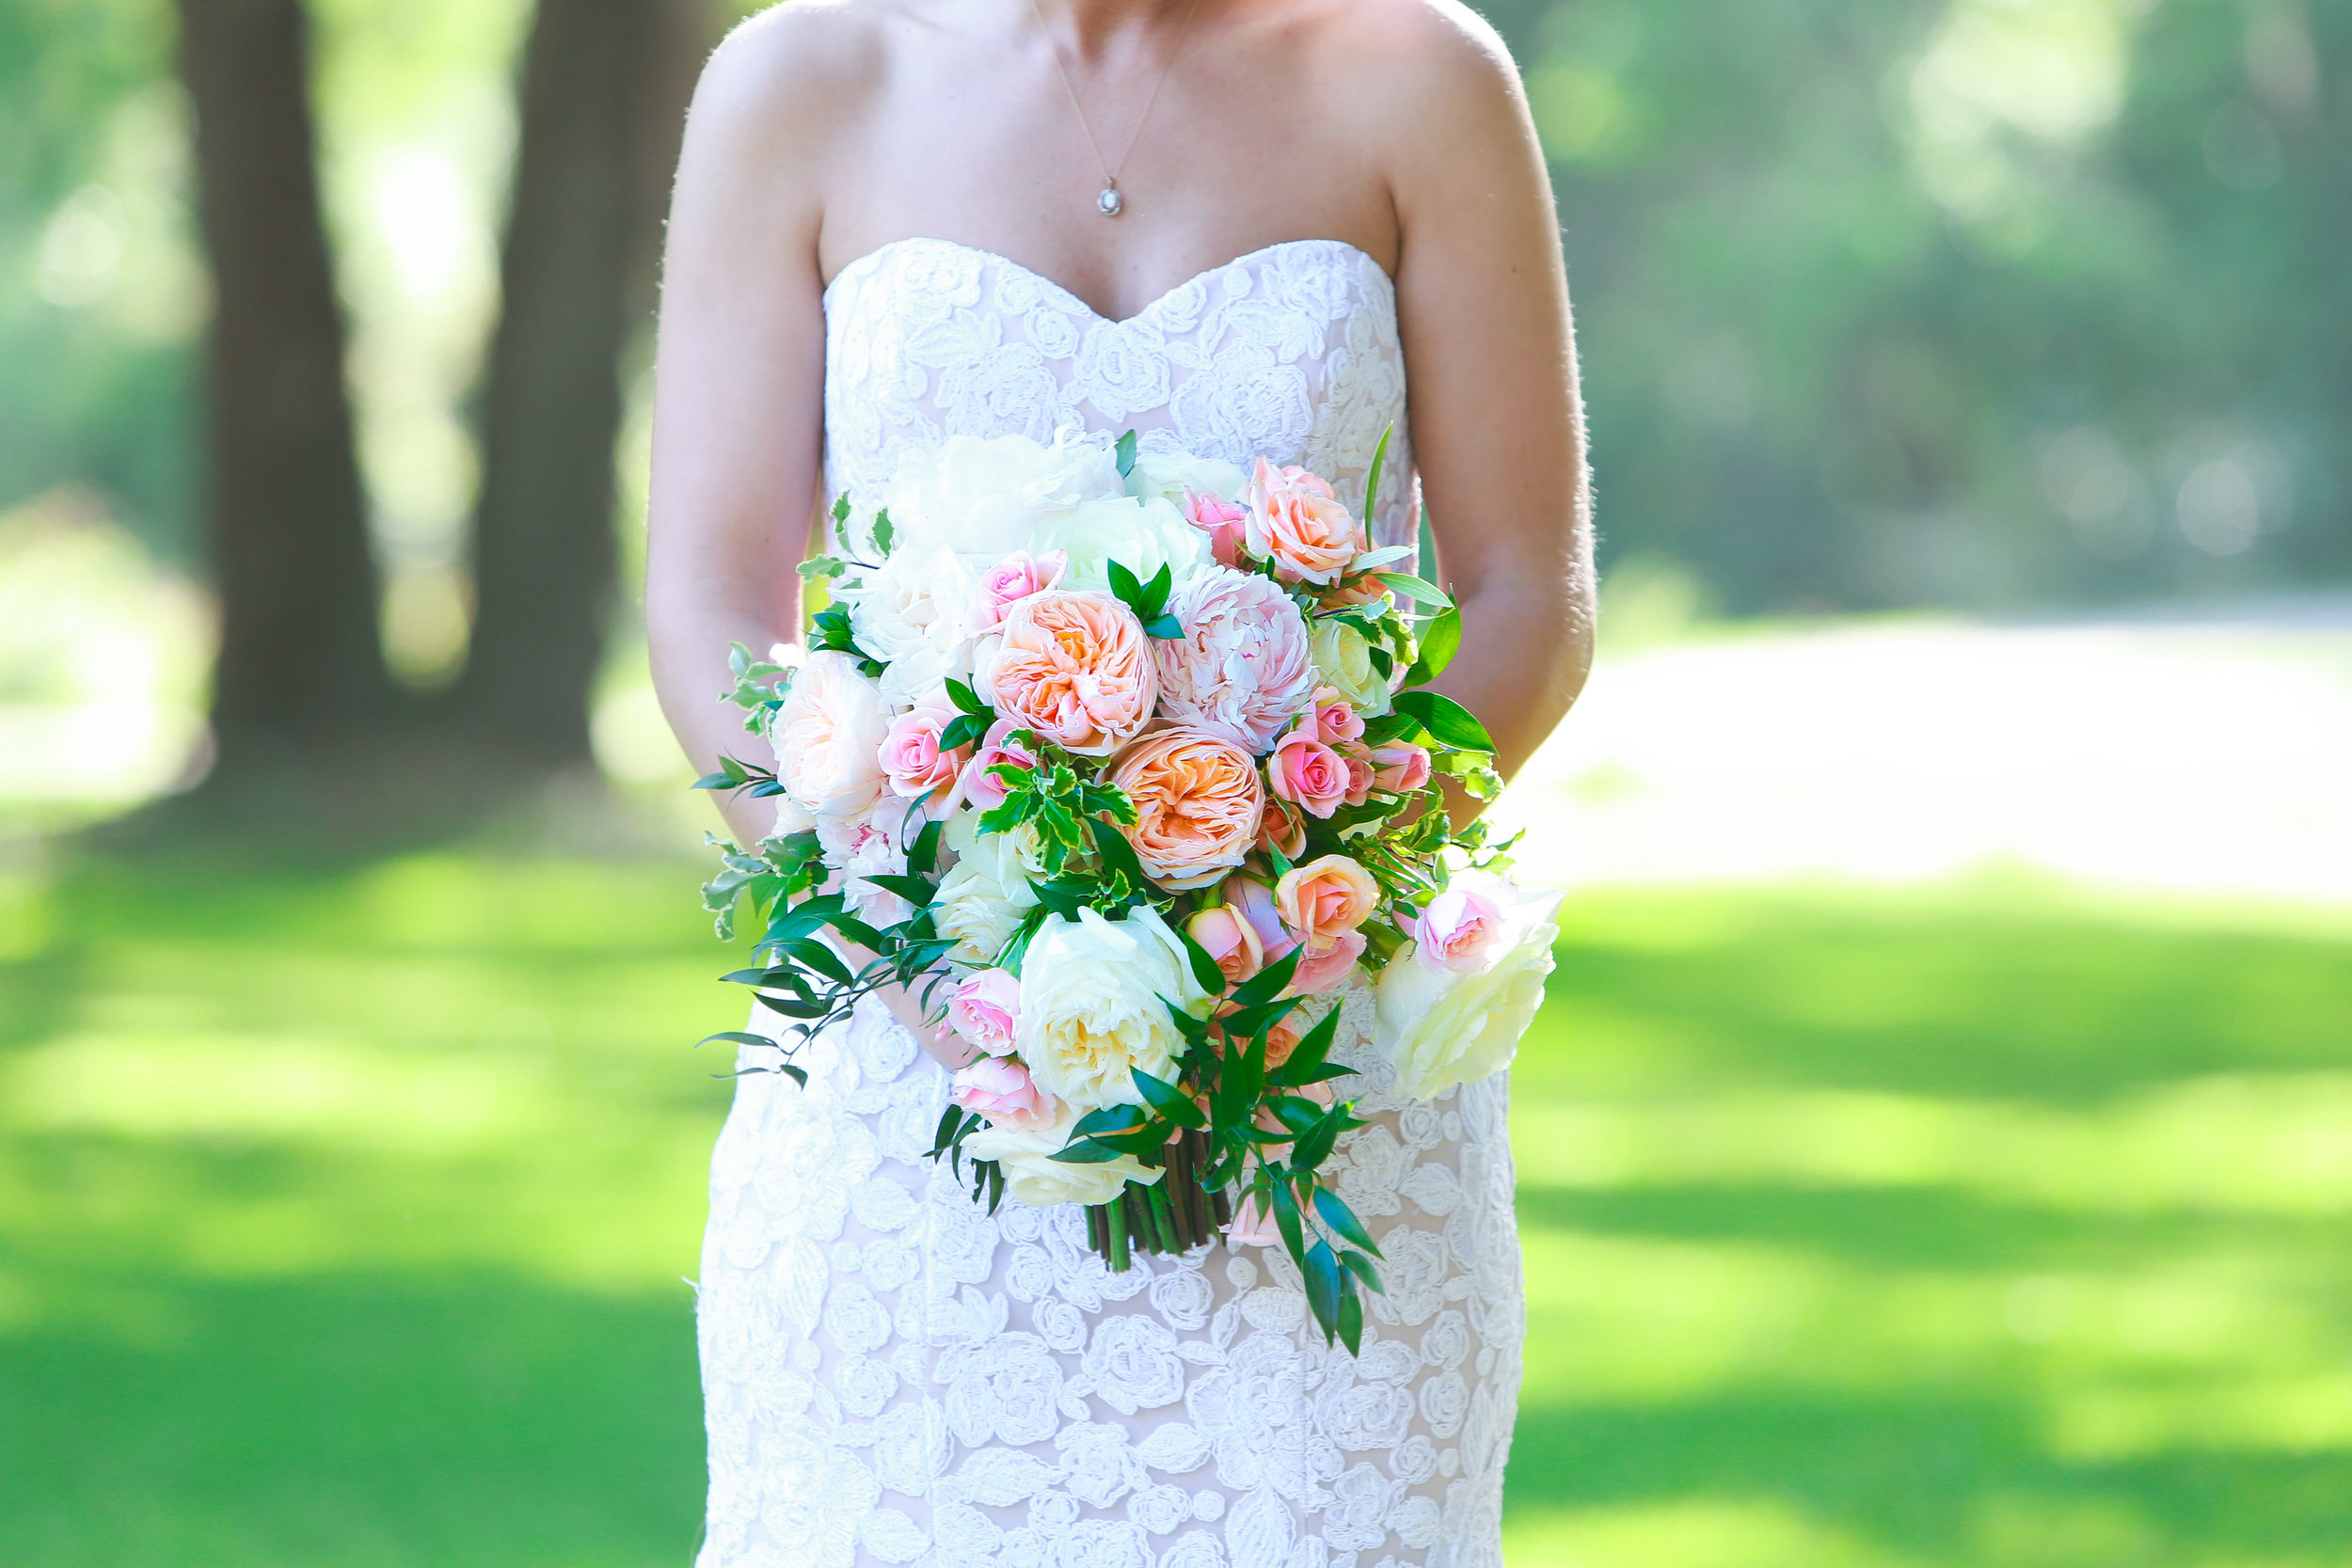 Beautiful pink and white rose bouquet being held by a bride